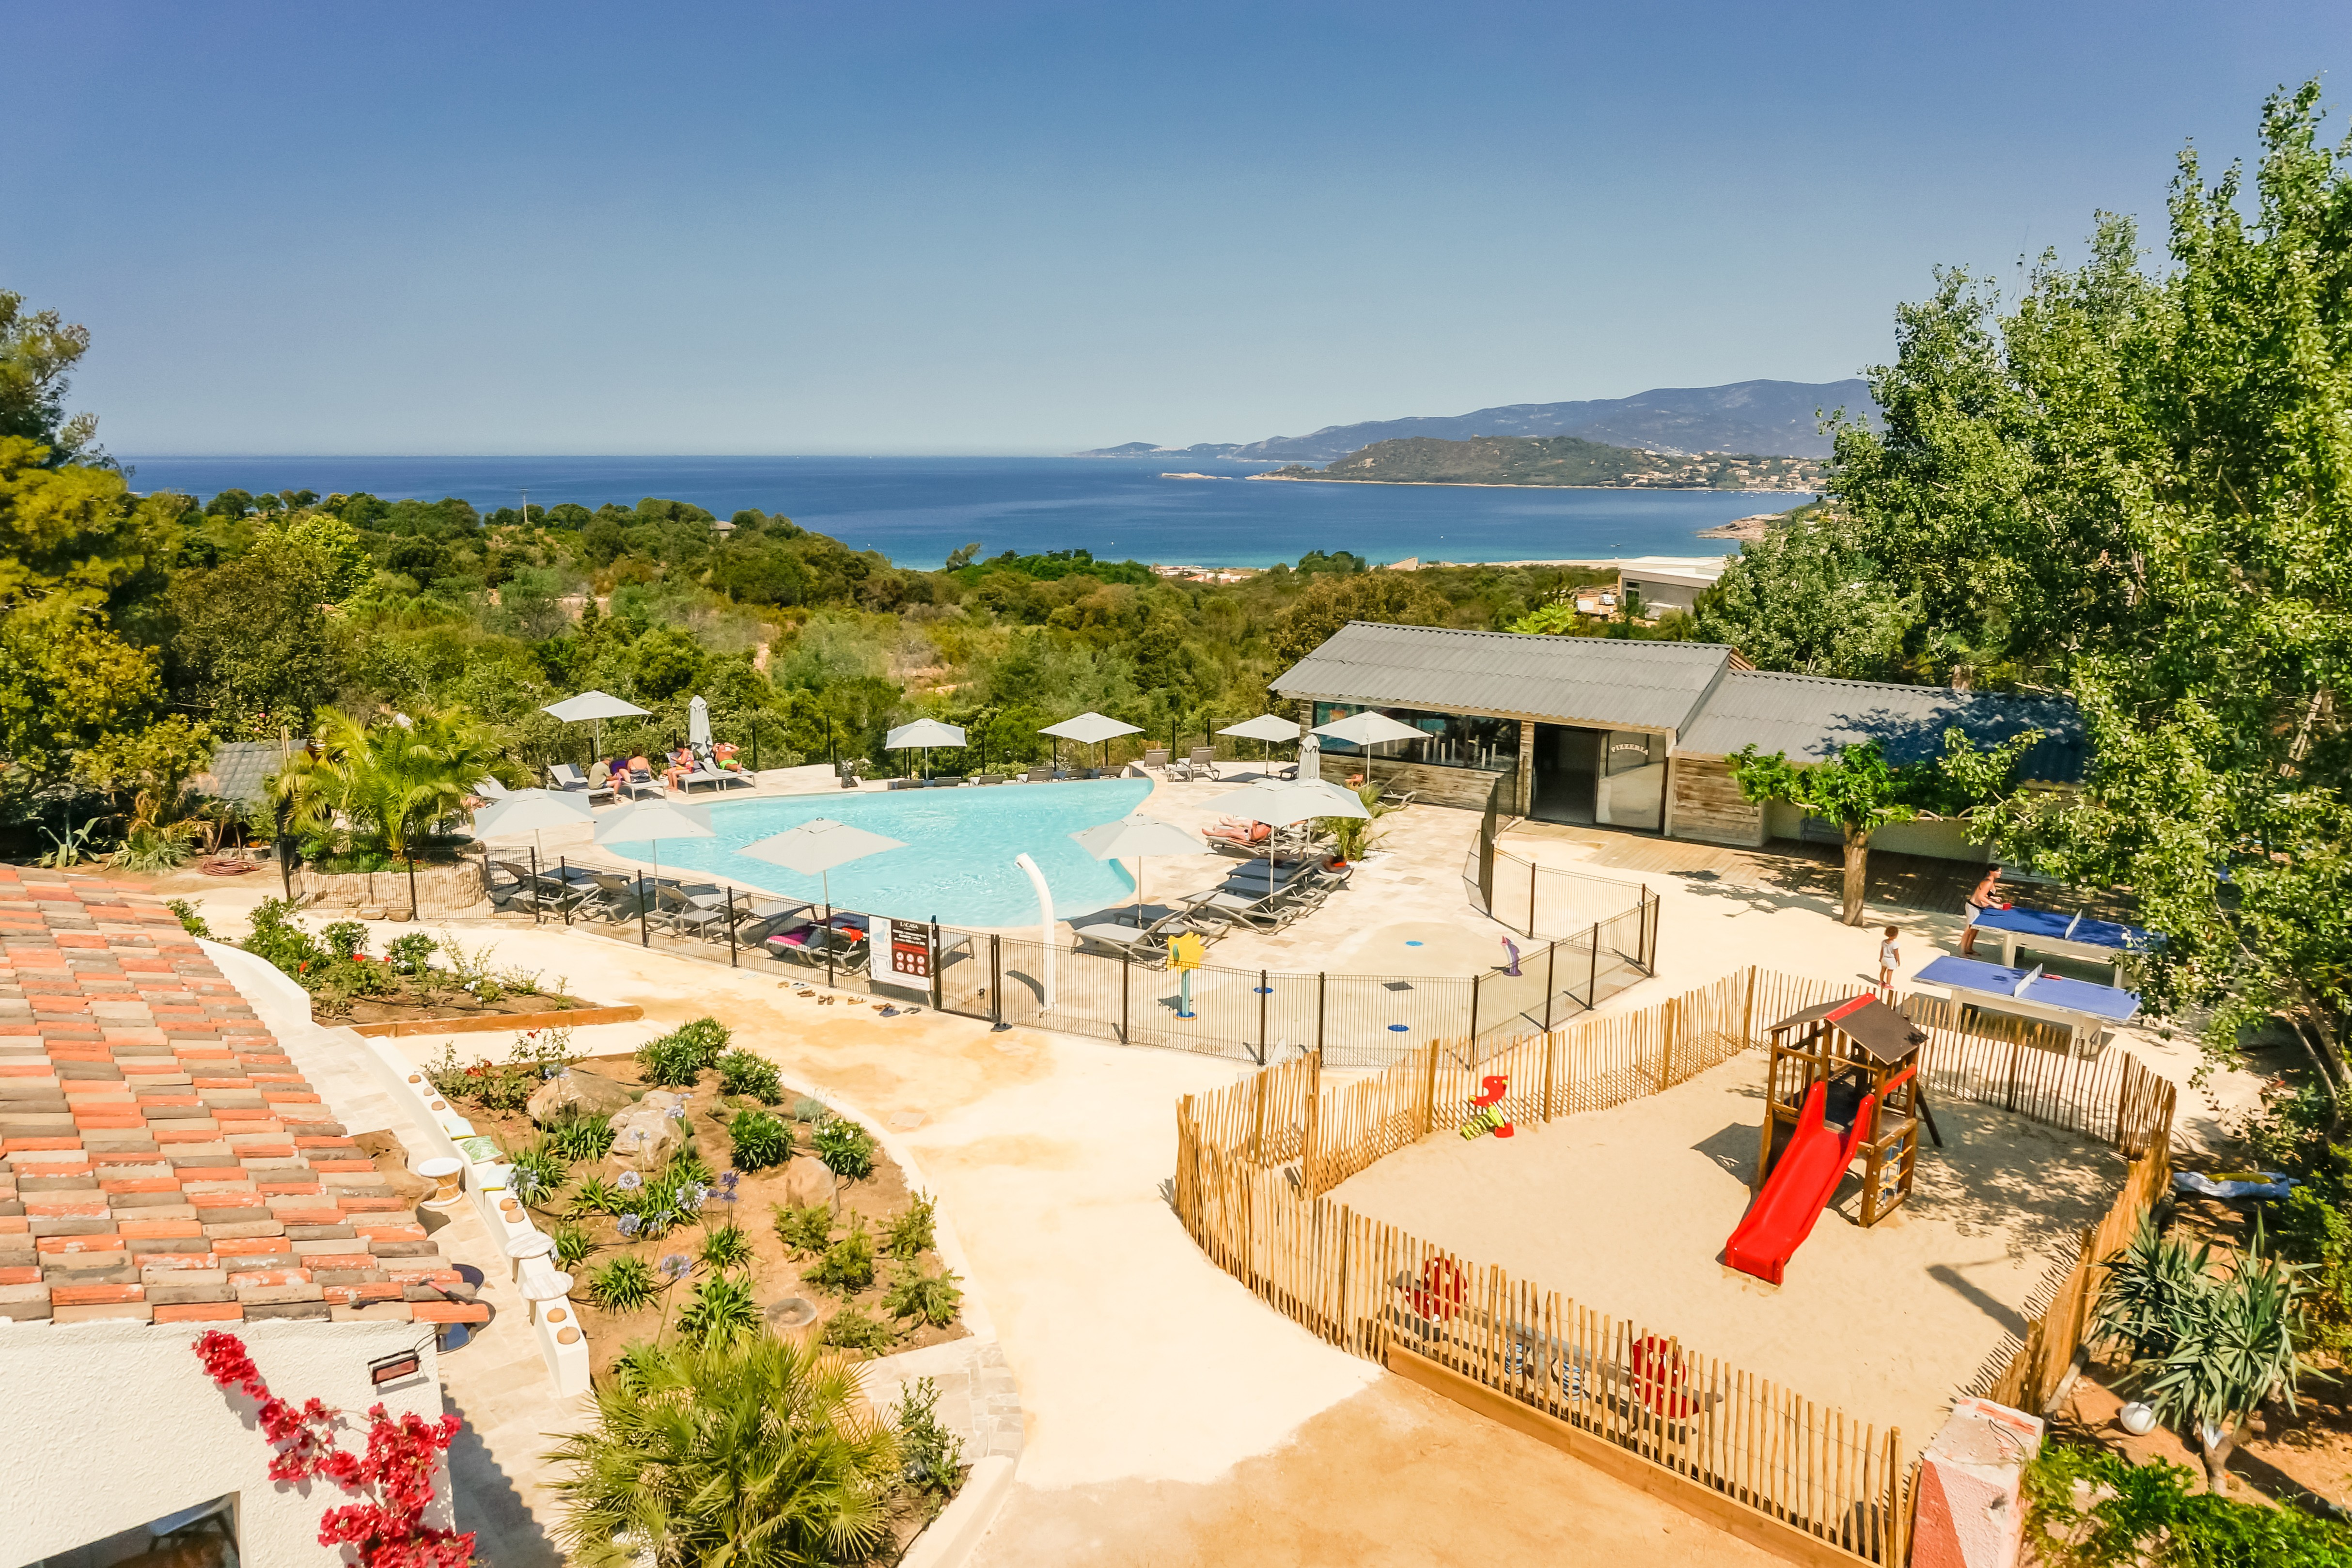 Campings en corse r servation d s 60 for Camping avec piscine sud de la france